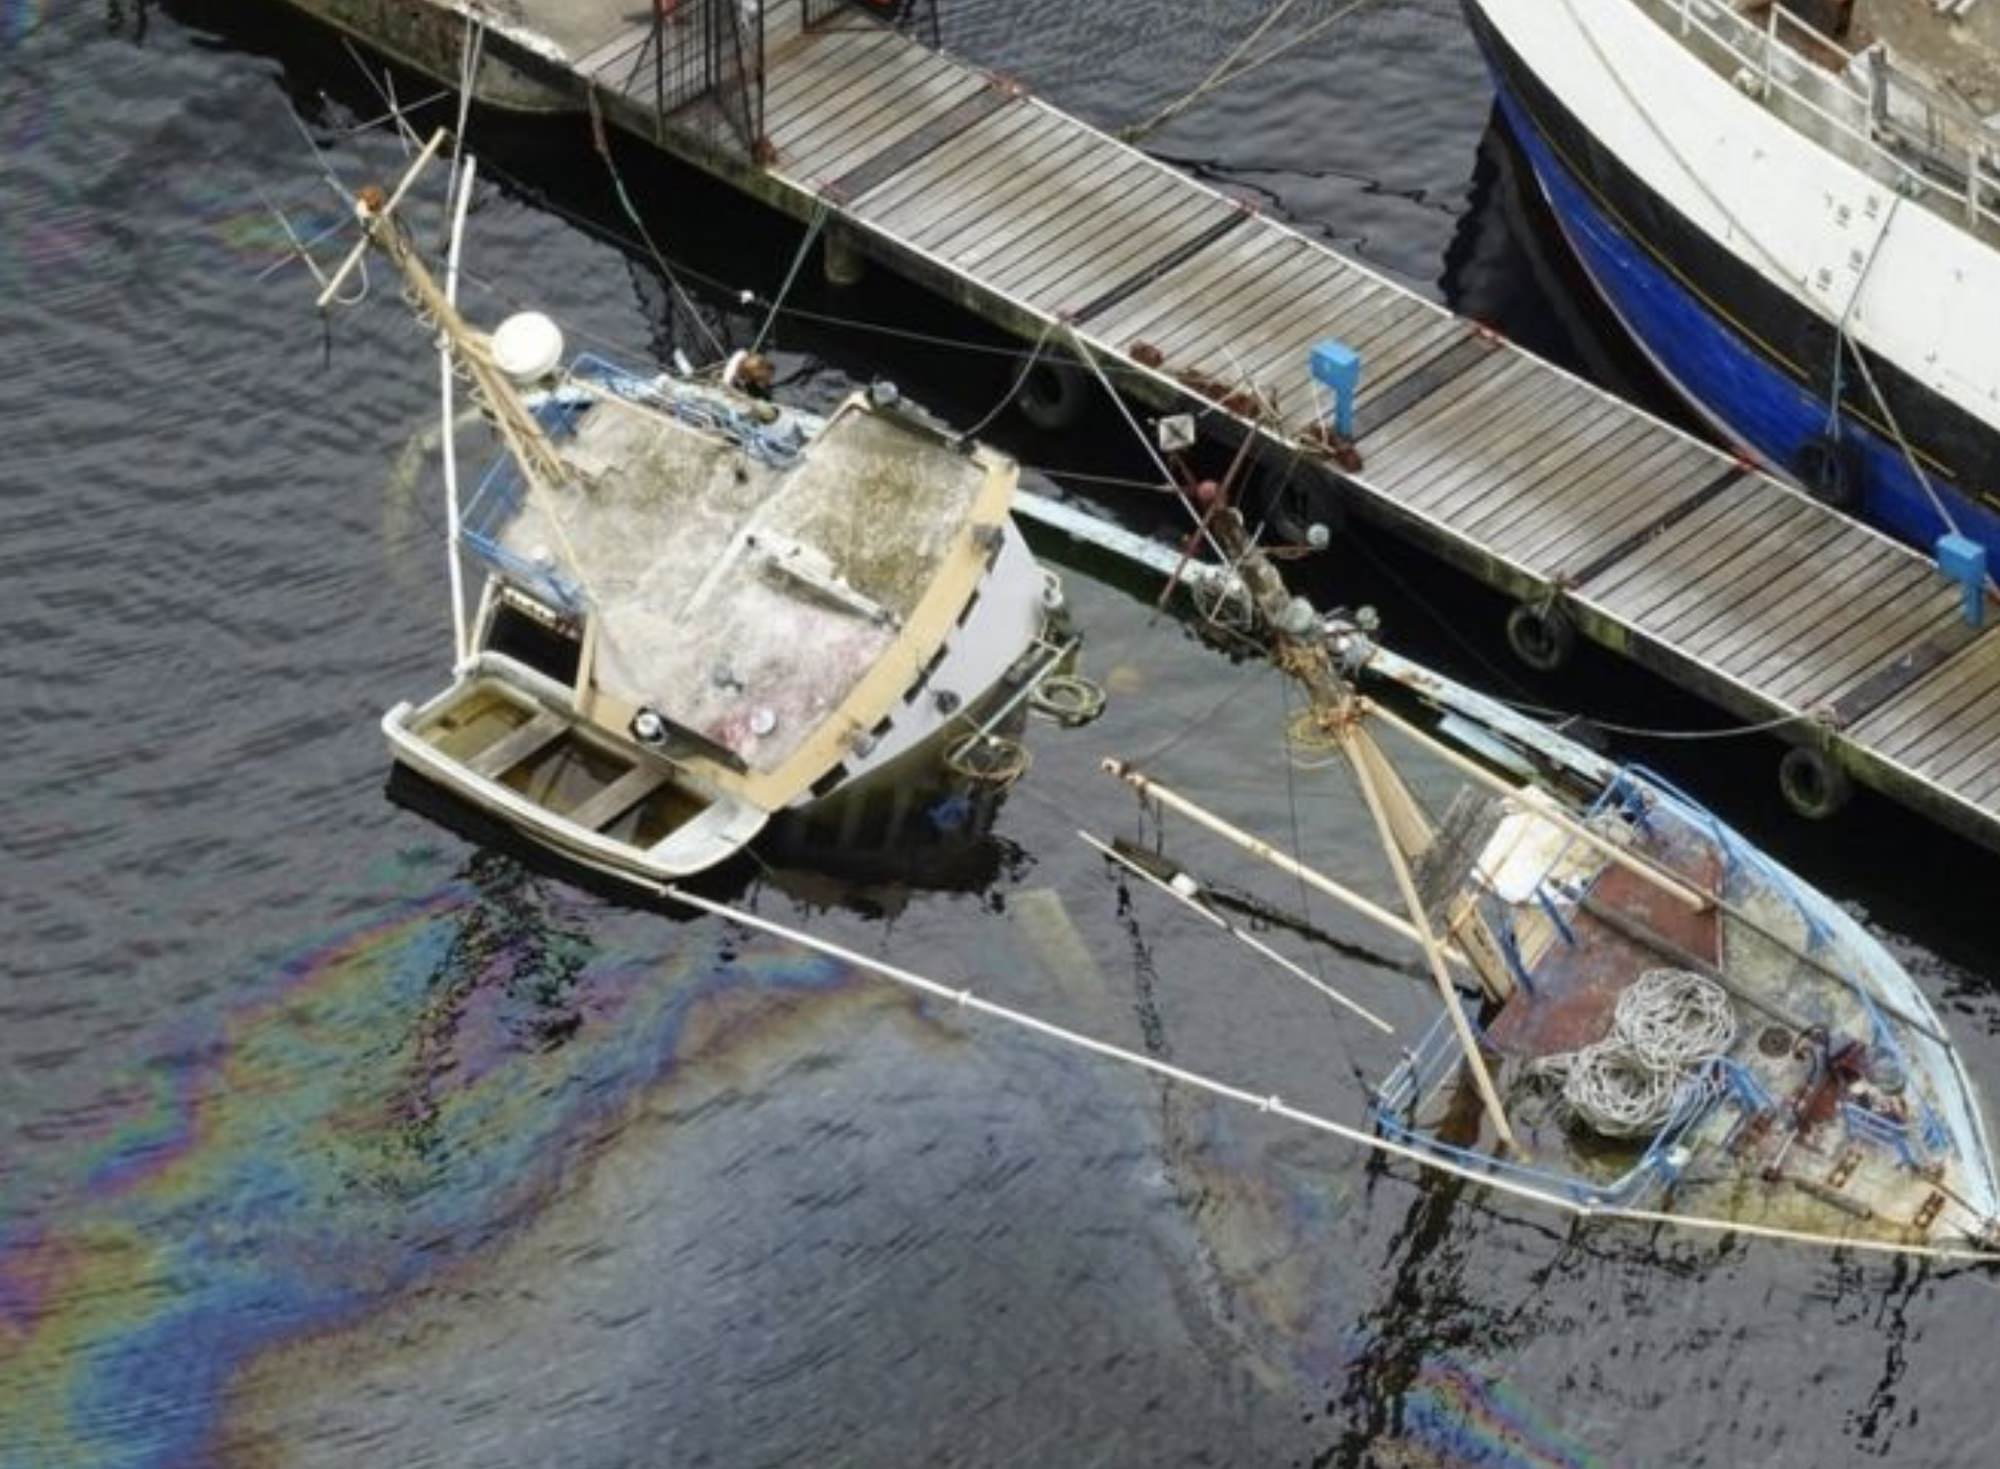 Drone photos show extend of oil spill after boats sinks